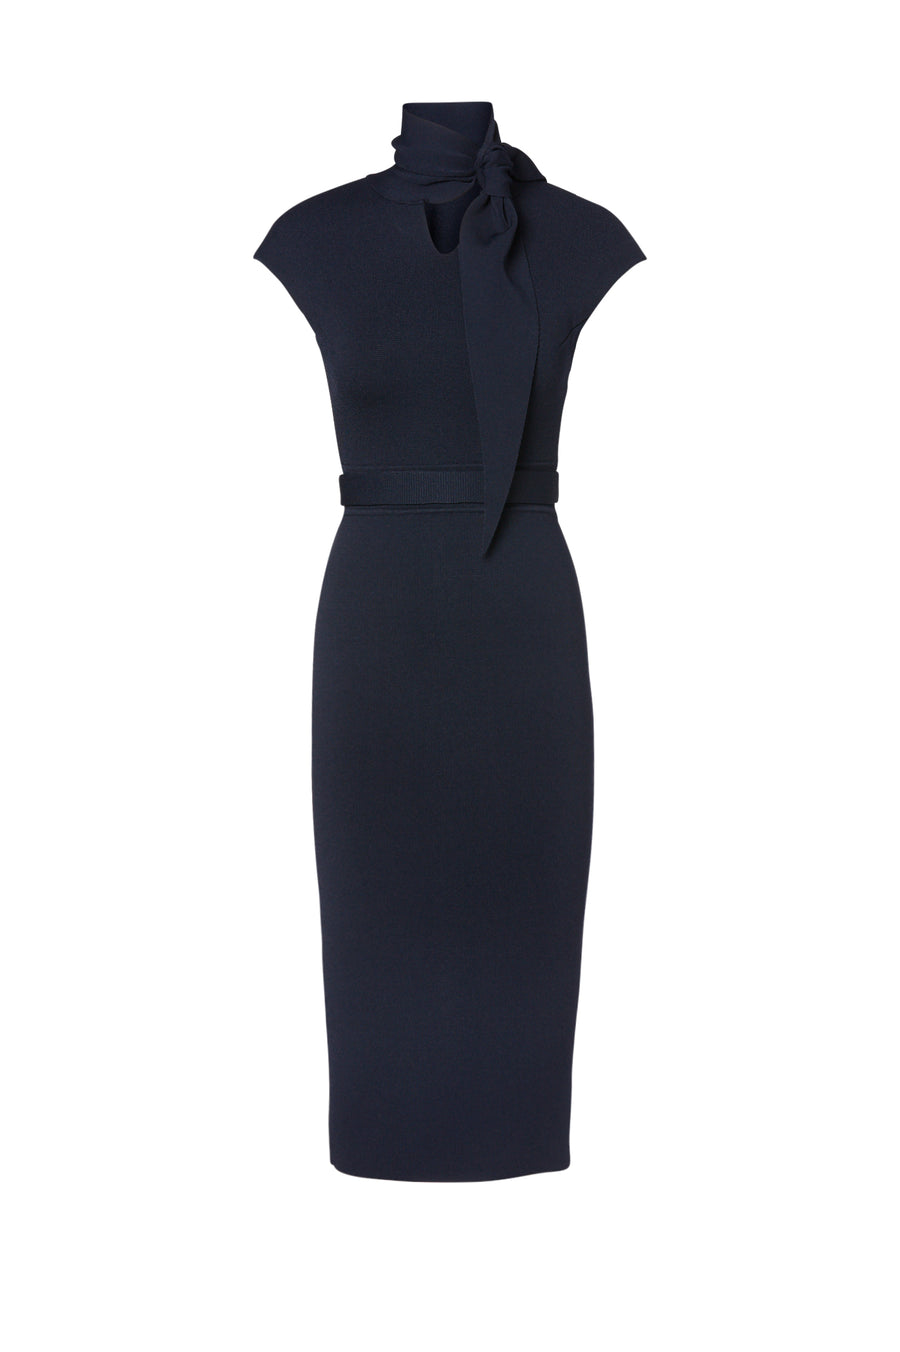 Crepe Knit Cravat Dress, tailored with cap sleeves, cravat style. Color Navy